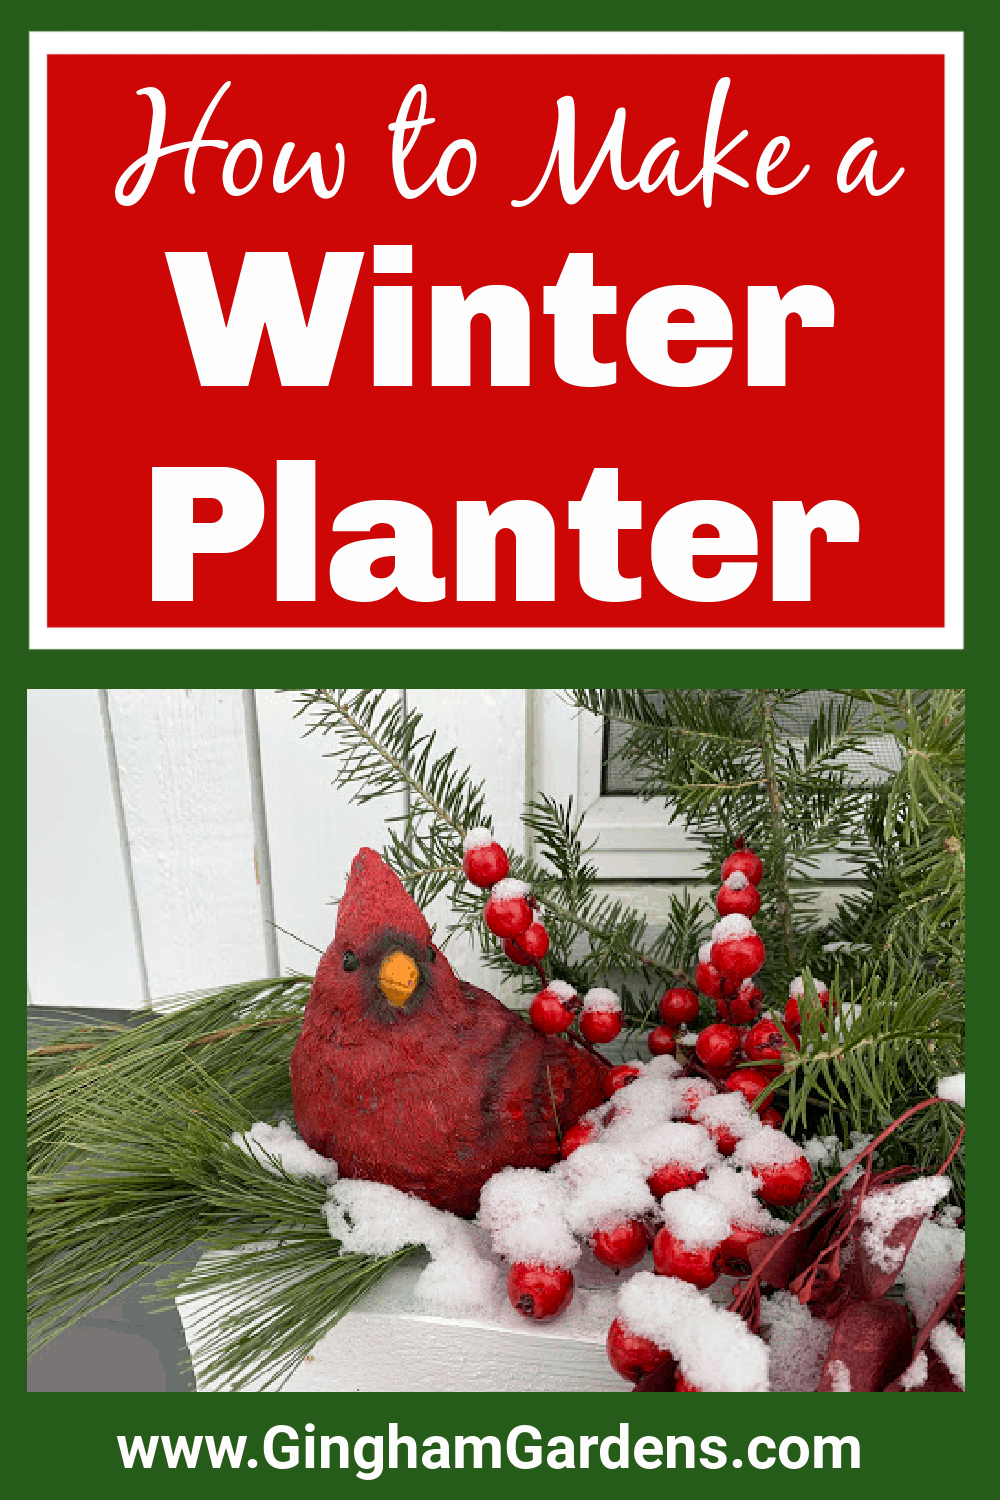 Image of a Winter Window Box with Text Overlay - How to Make a Winter Planter